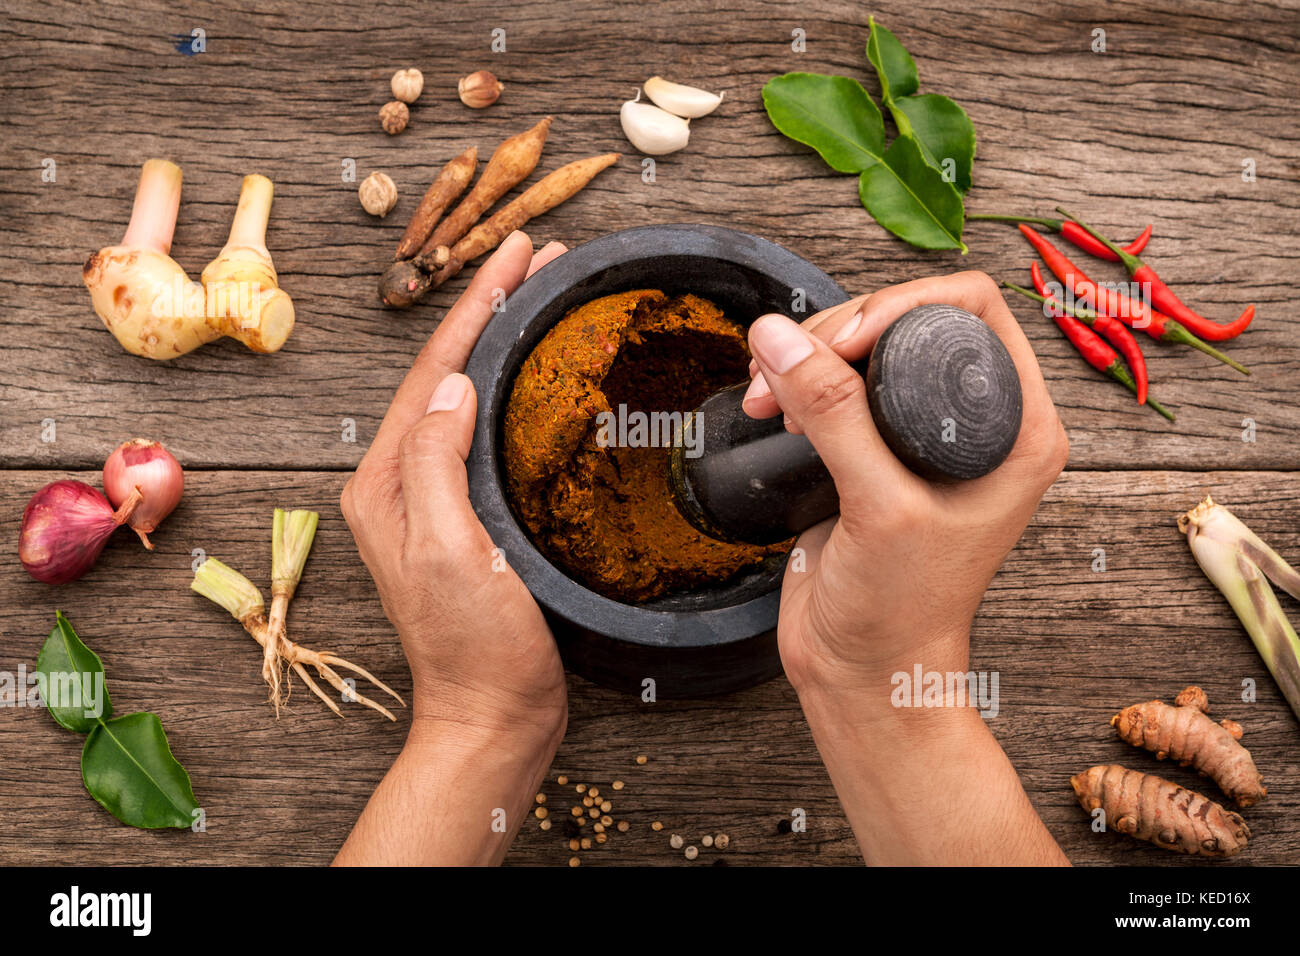 The Women hold pestle with mortar and spice red curry paste ingredient of thai popular food on rustic wooden background. - Stock Image